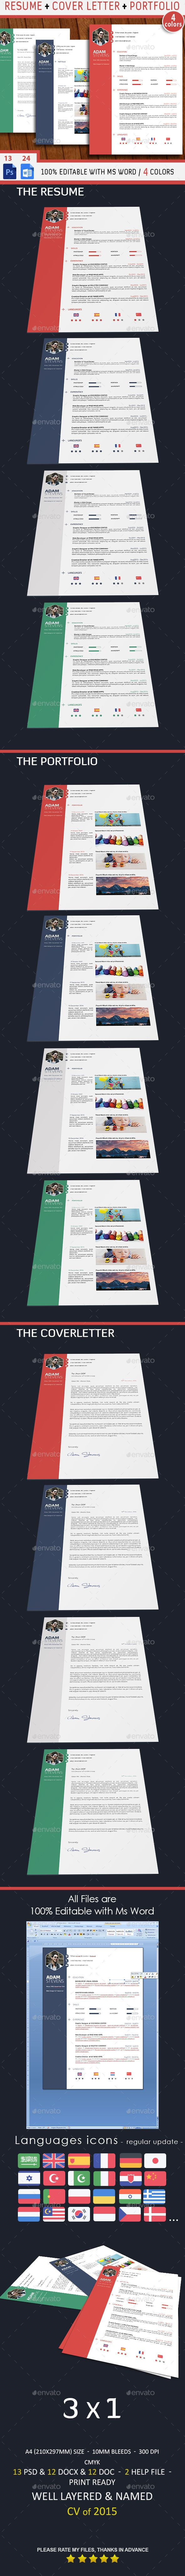 Professional Resume - CV - #Resumes #Stationery Download here: https://graphicriver.net/item/professional-resume-cv/9687662?ref=alena994